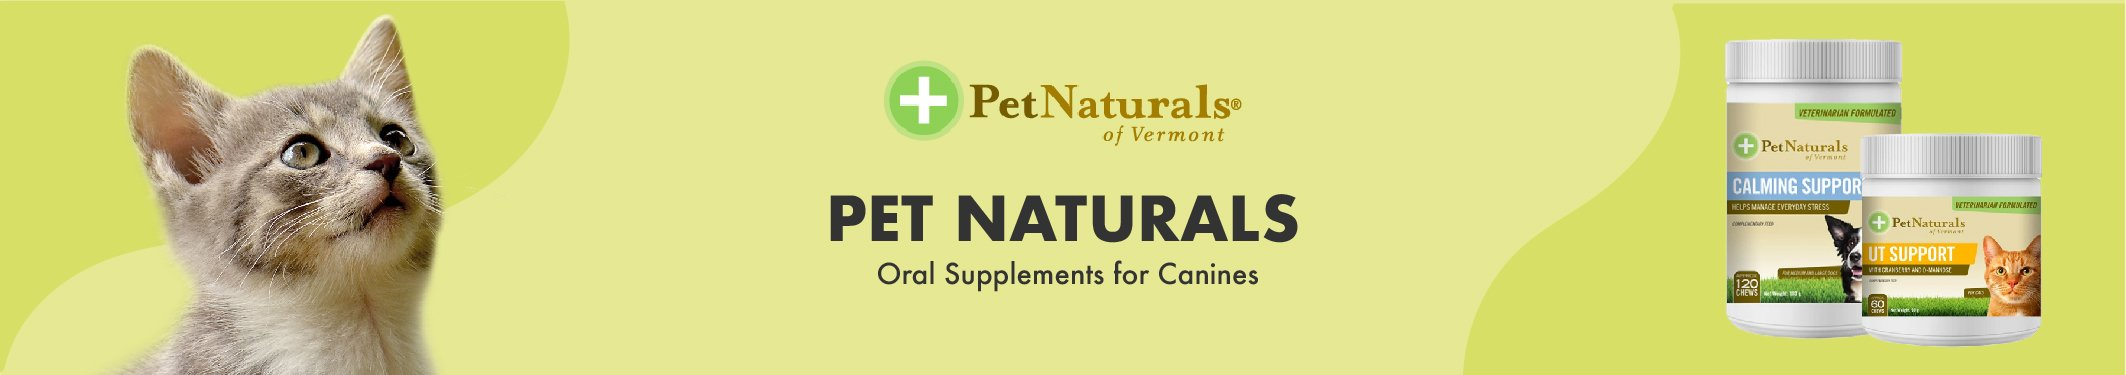 Pet Naturals Oral Supplements for Cats